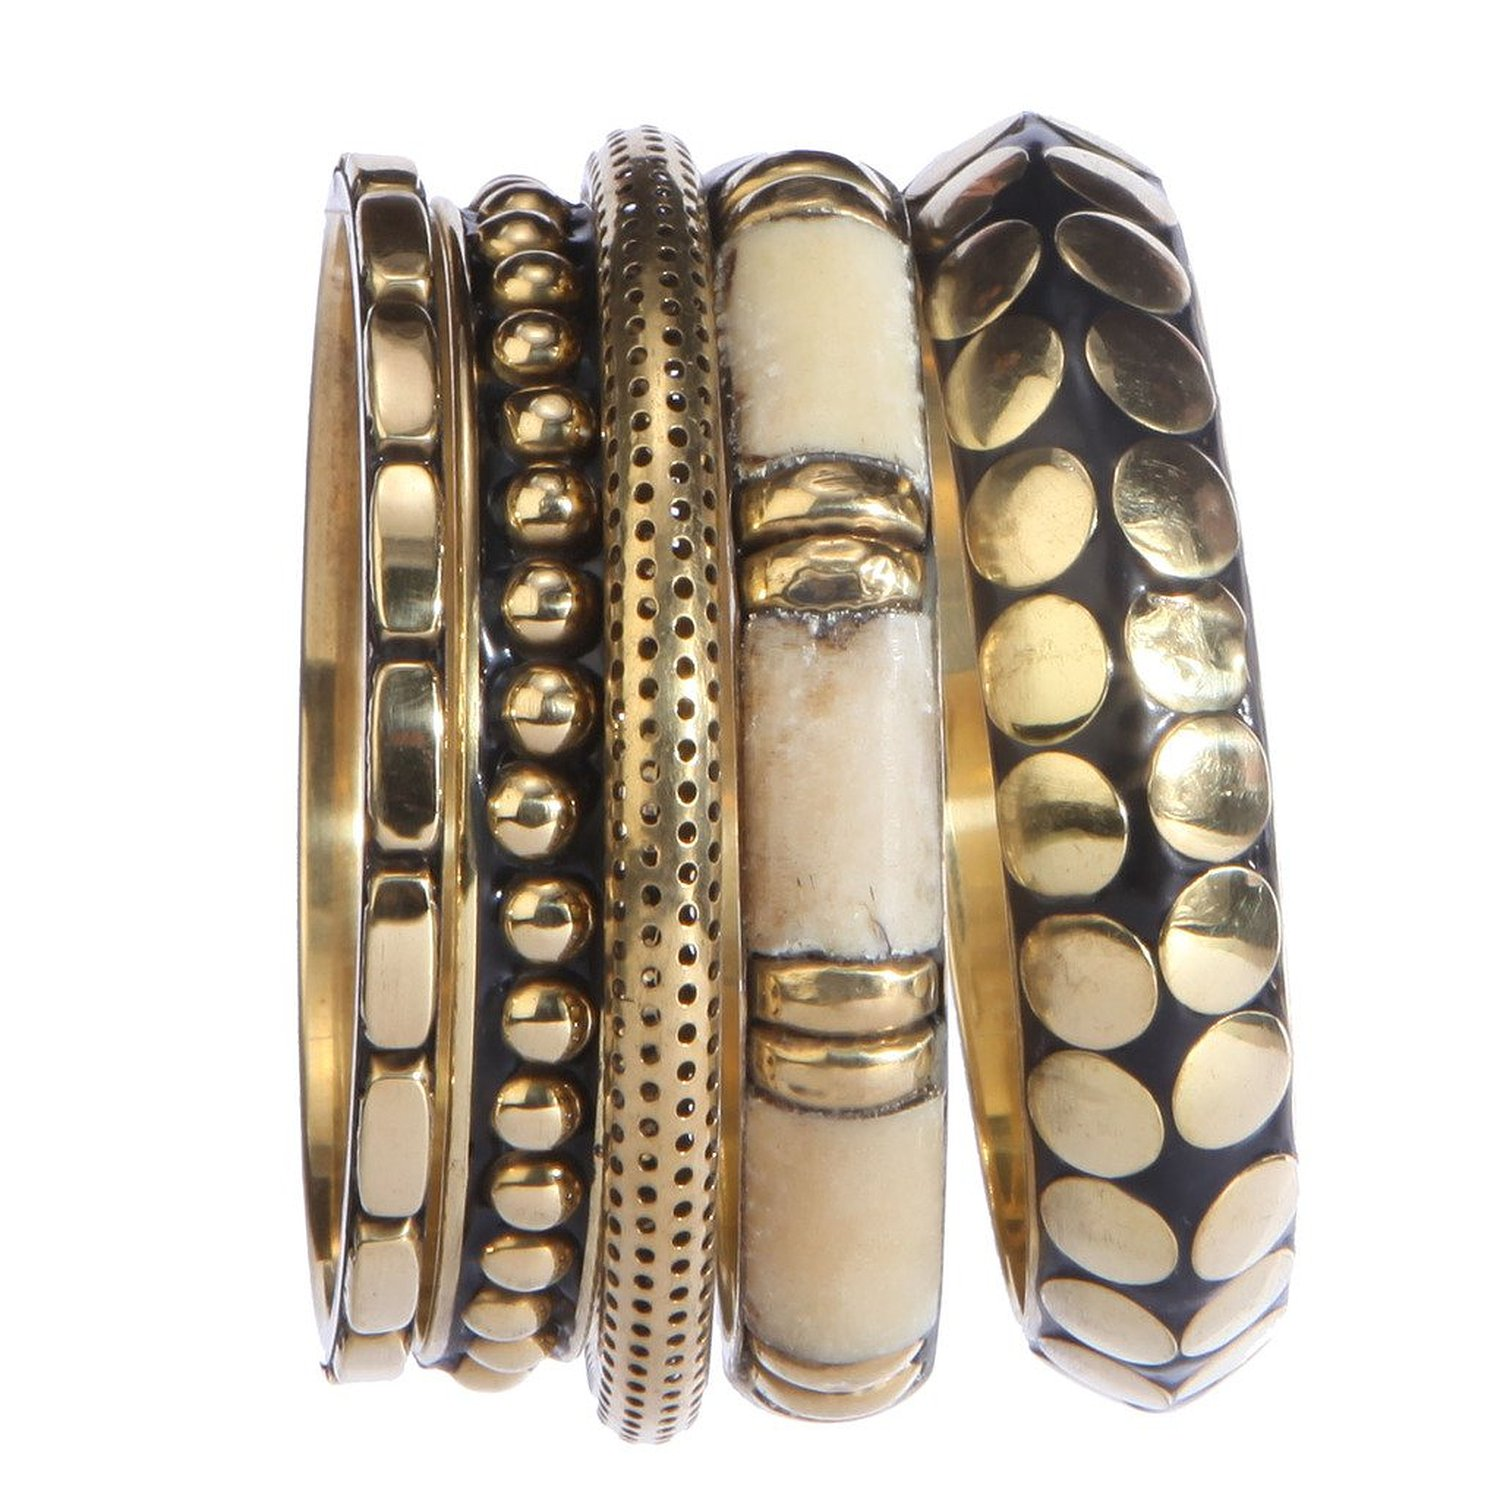 compliment pcs sensibilities o silver and motif the metal set your bangle antique traditional indian bangles express